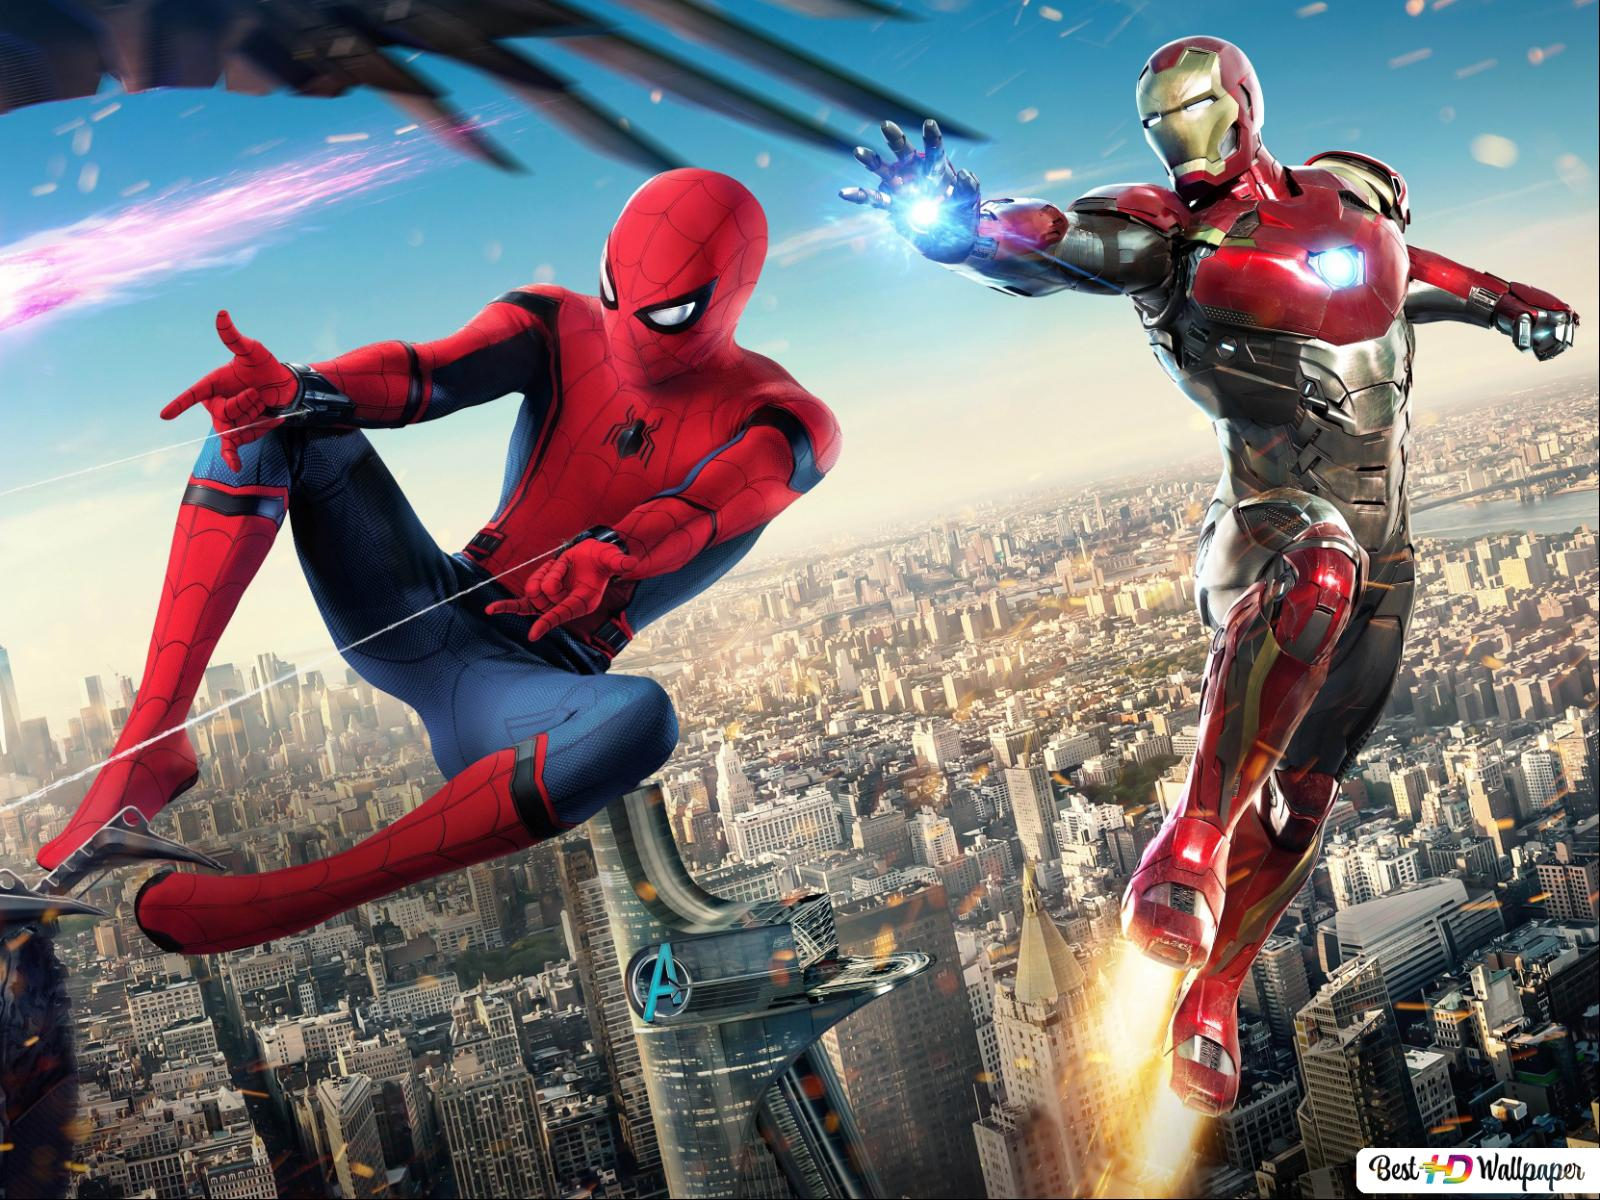 Spider Man Homecoming Movie Spiderman And Ironman Fighting With